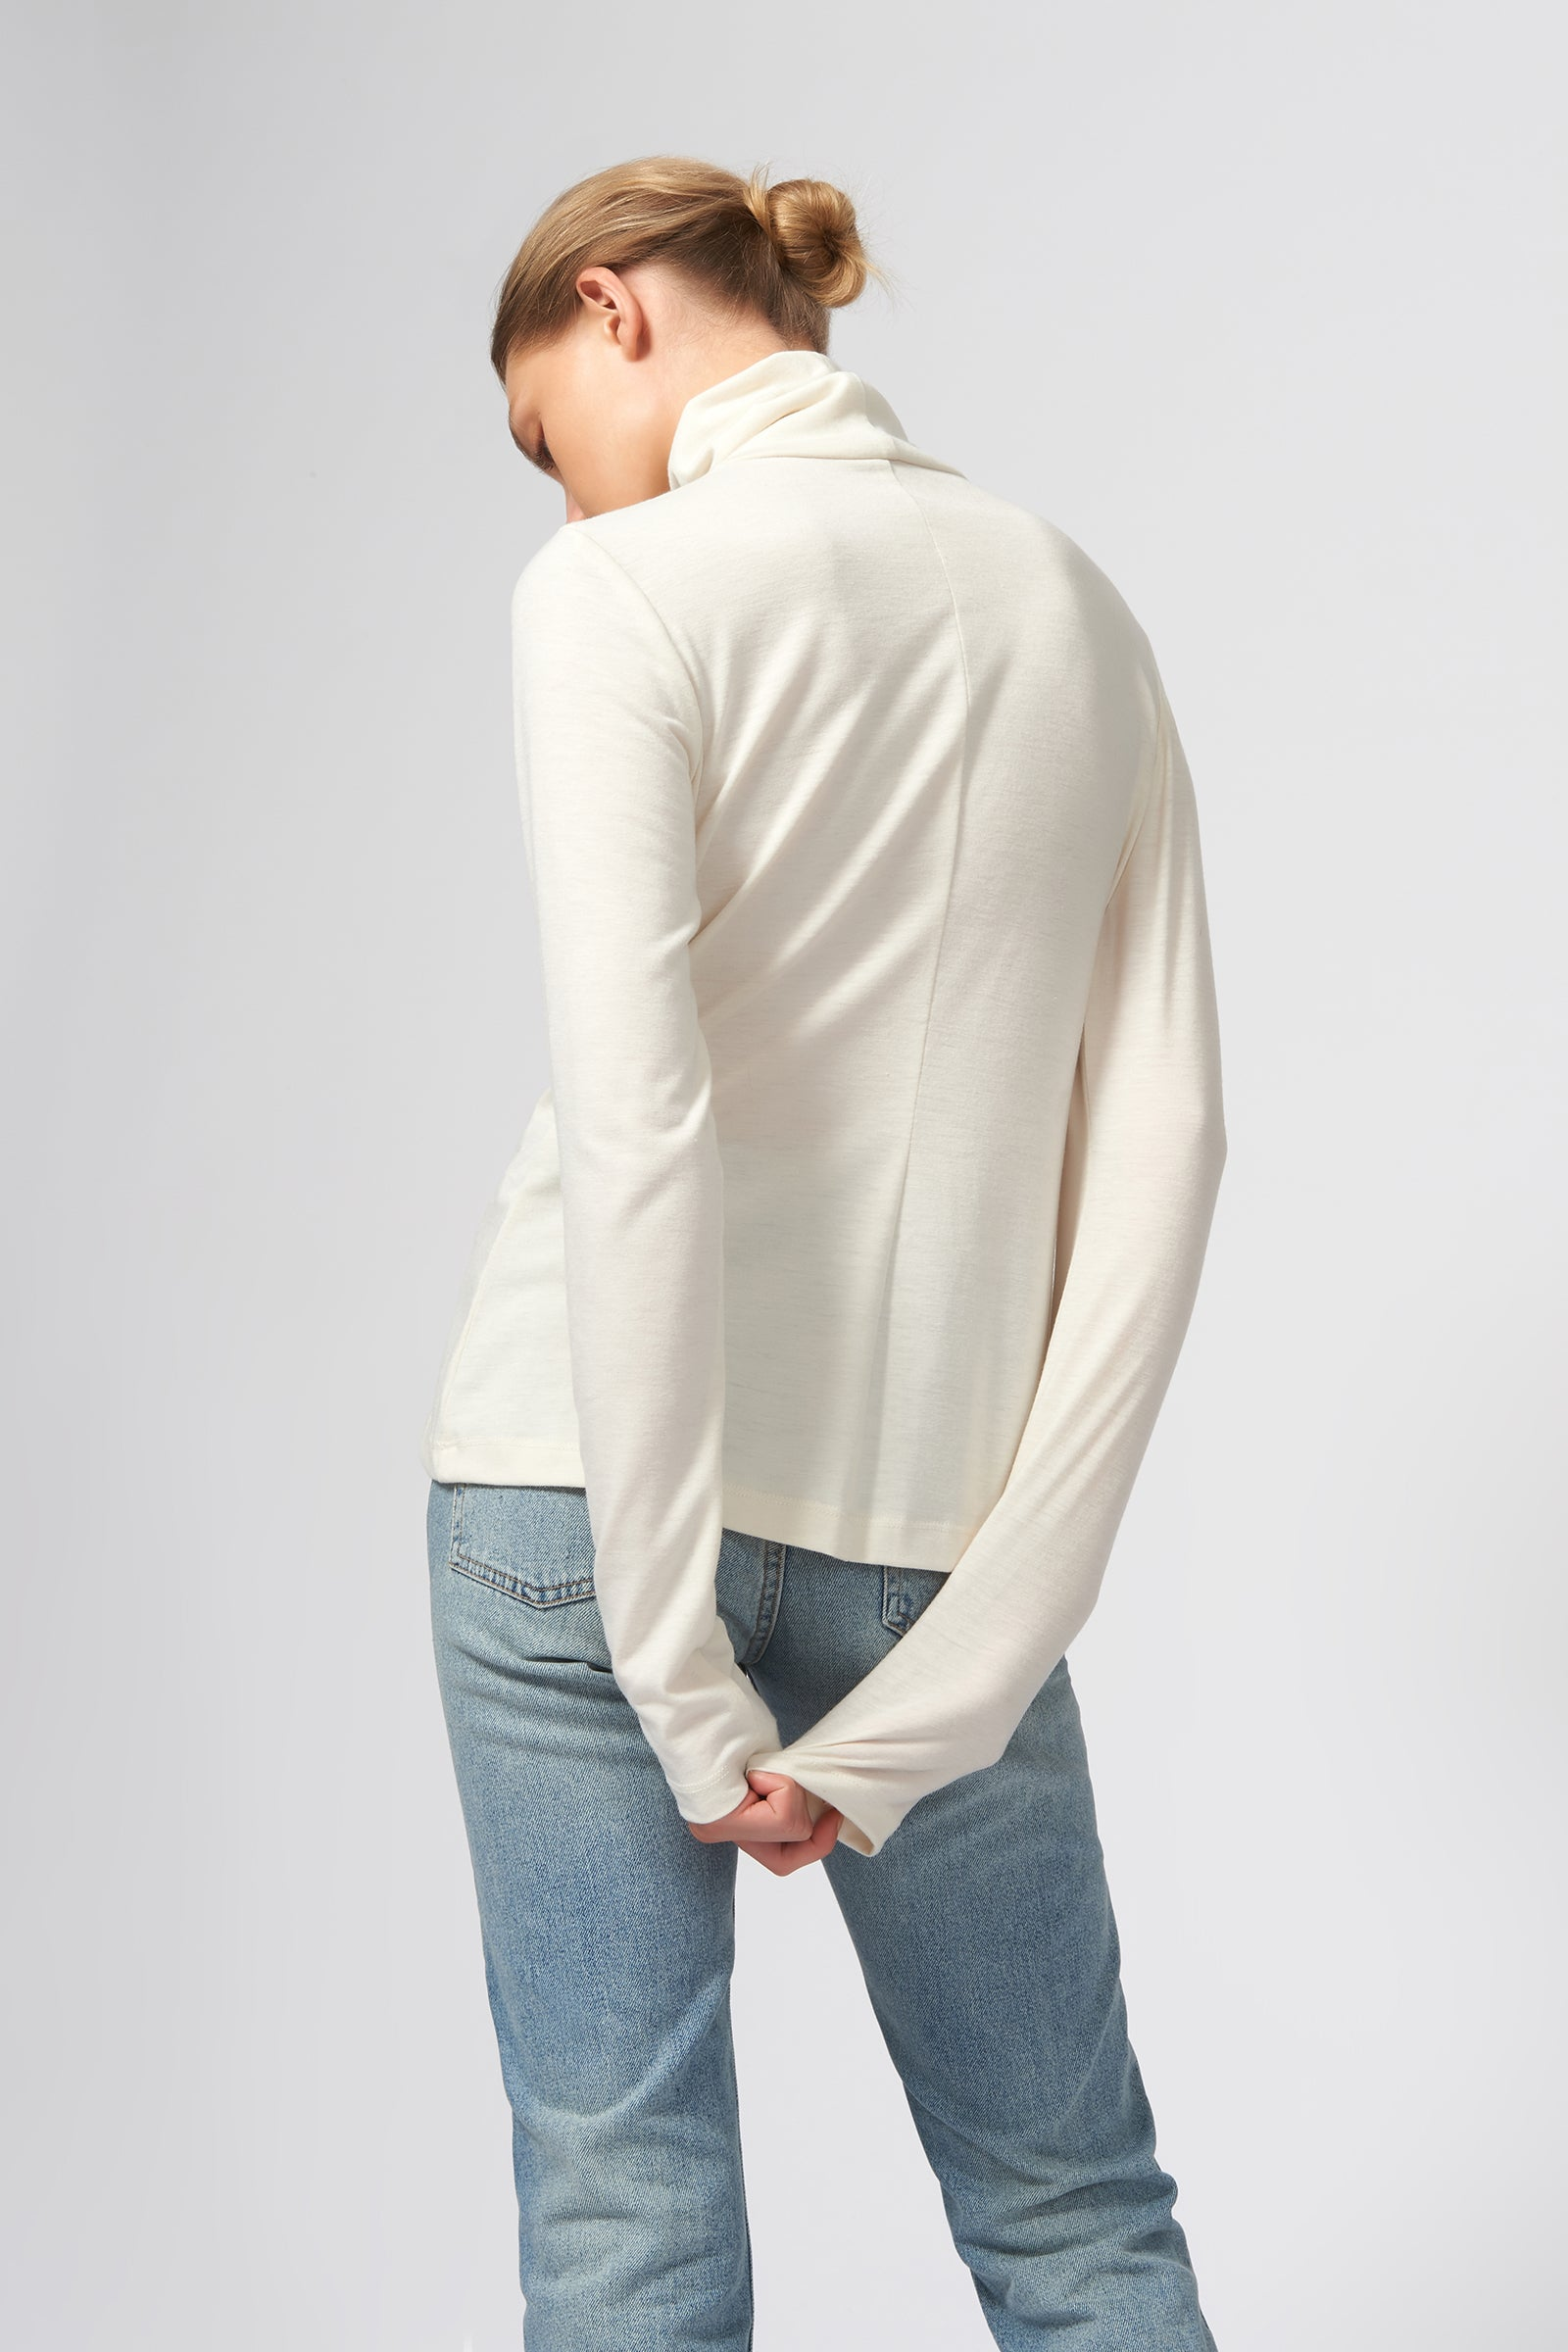 Kal Rieman Seamed Turtleneck in Ivory on Model Front View